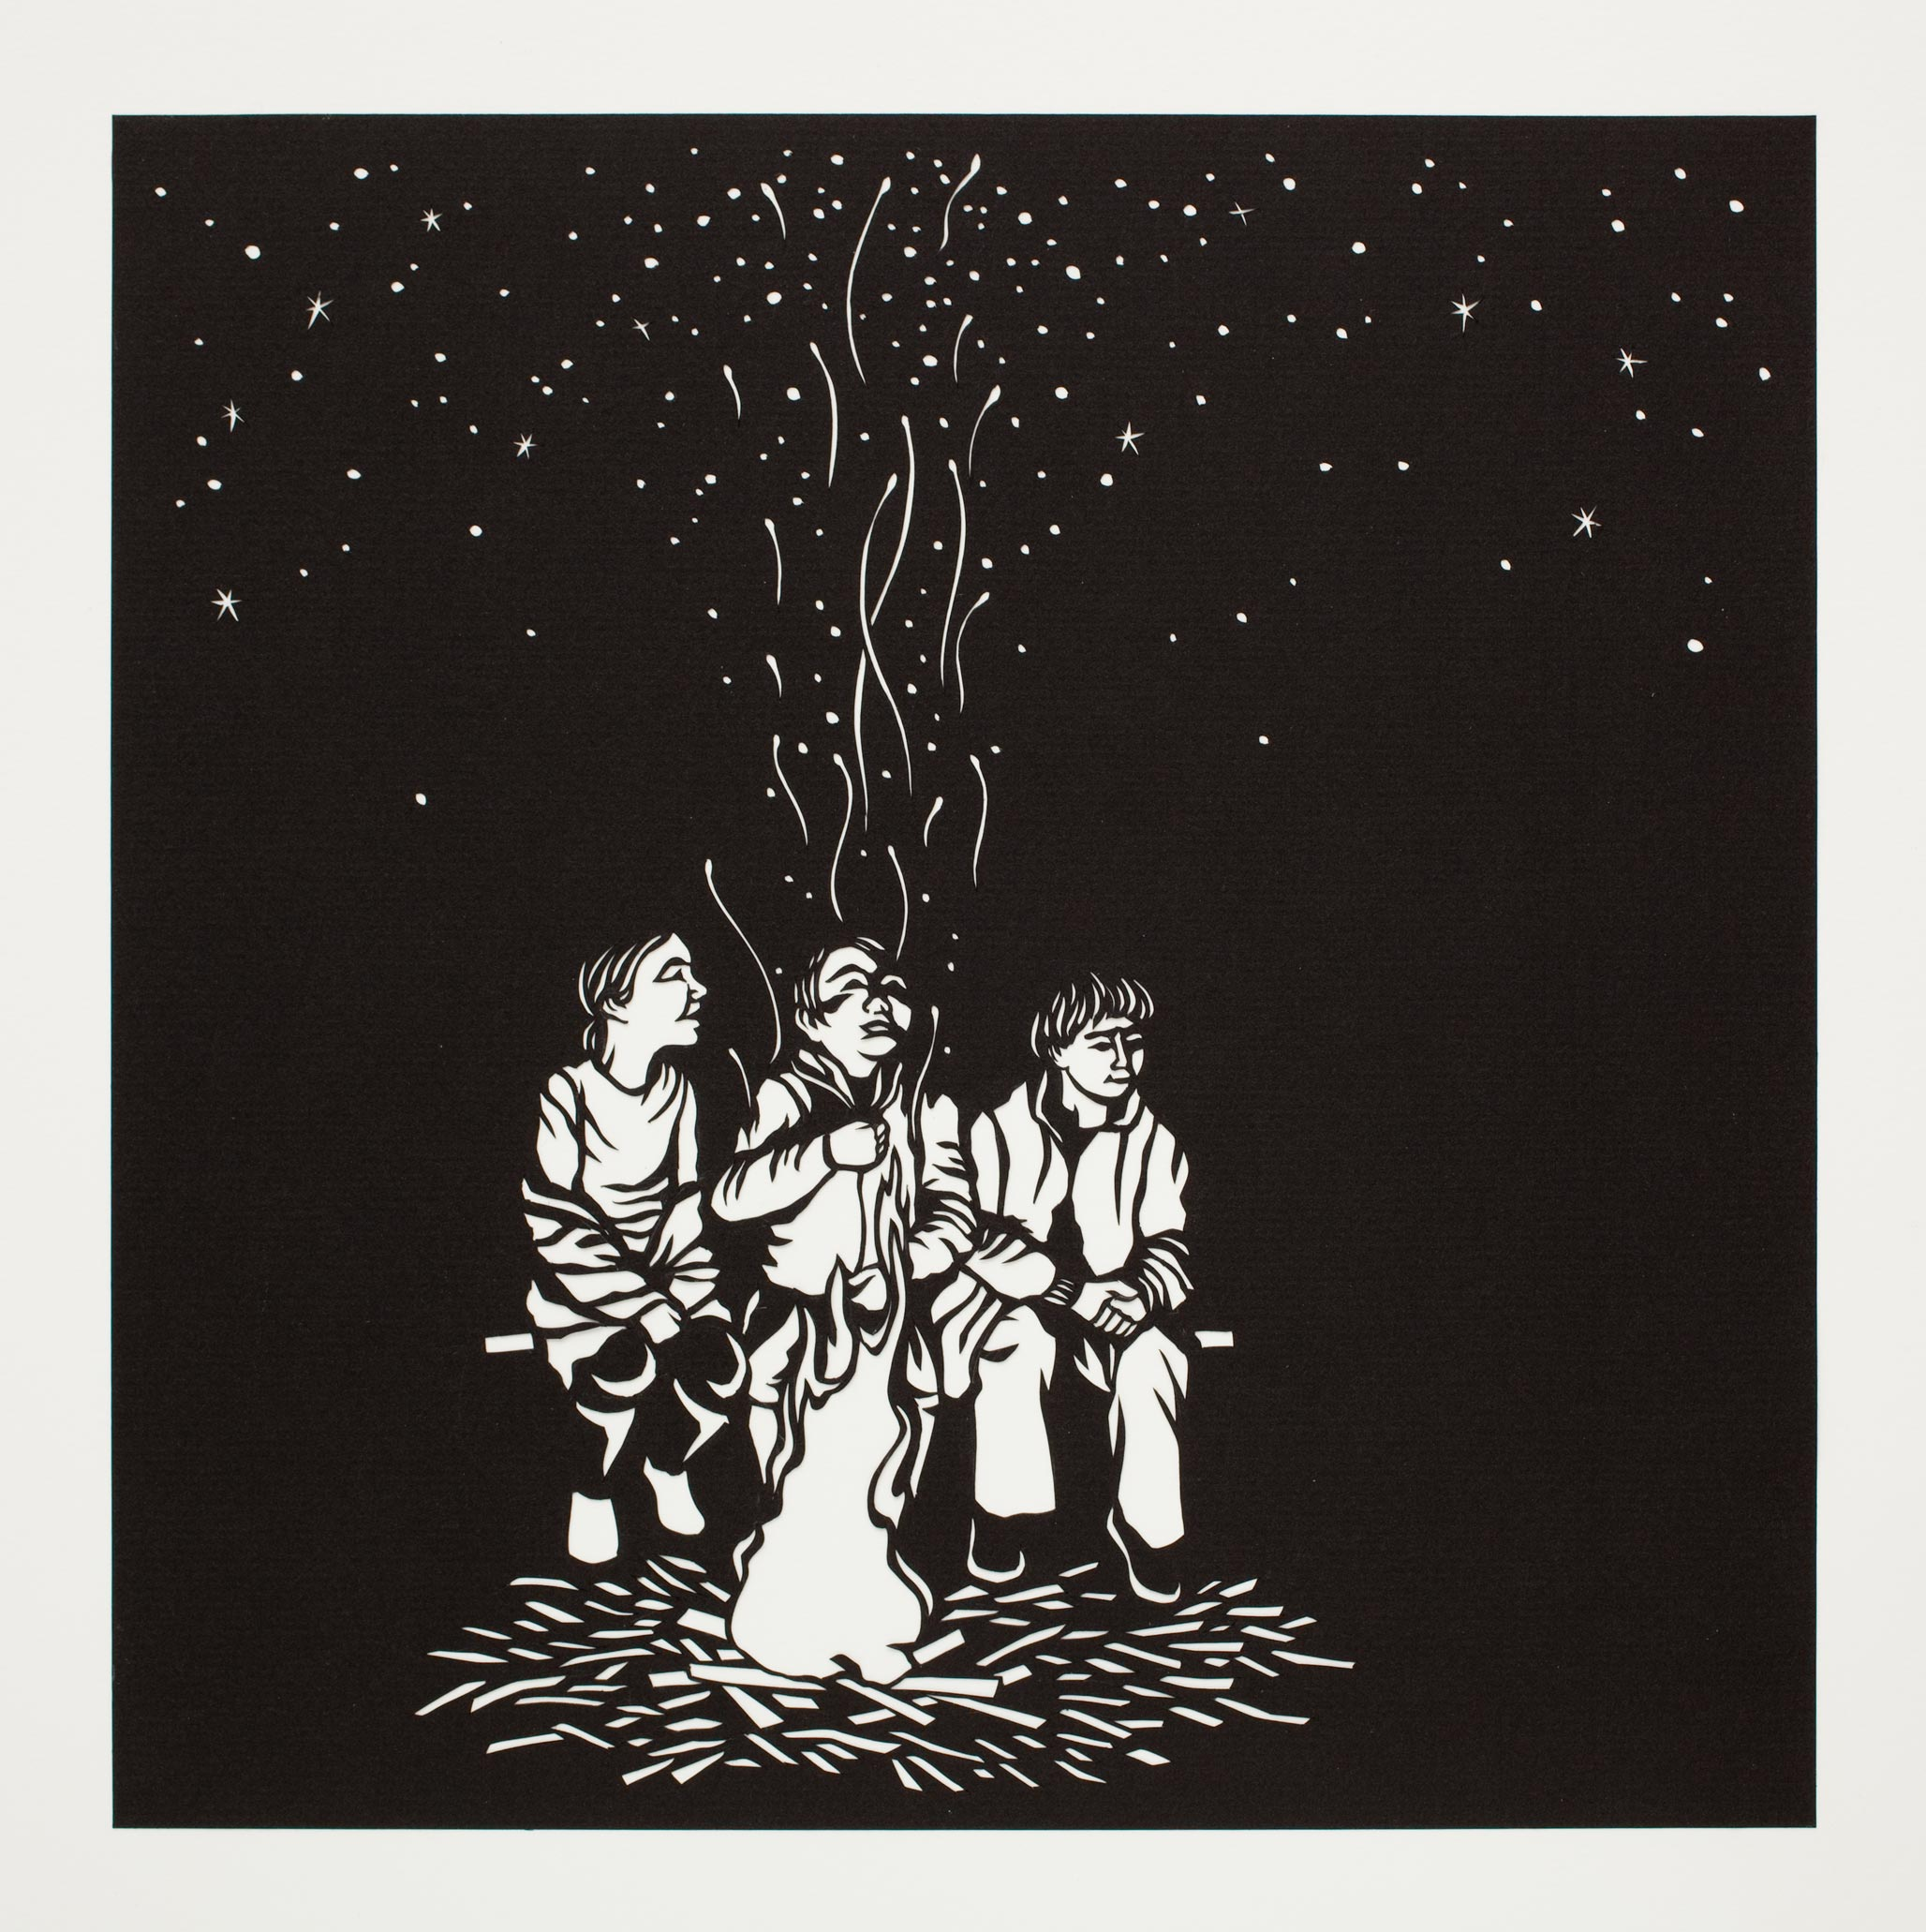 We Are Starlight, 2012 - Nikki McClure